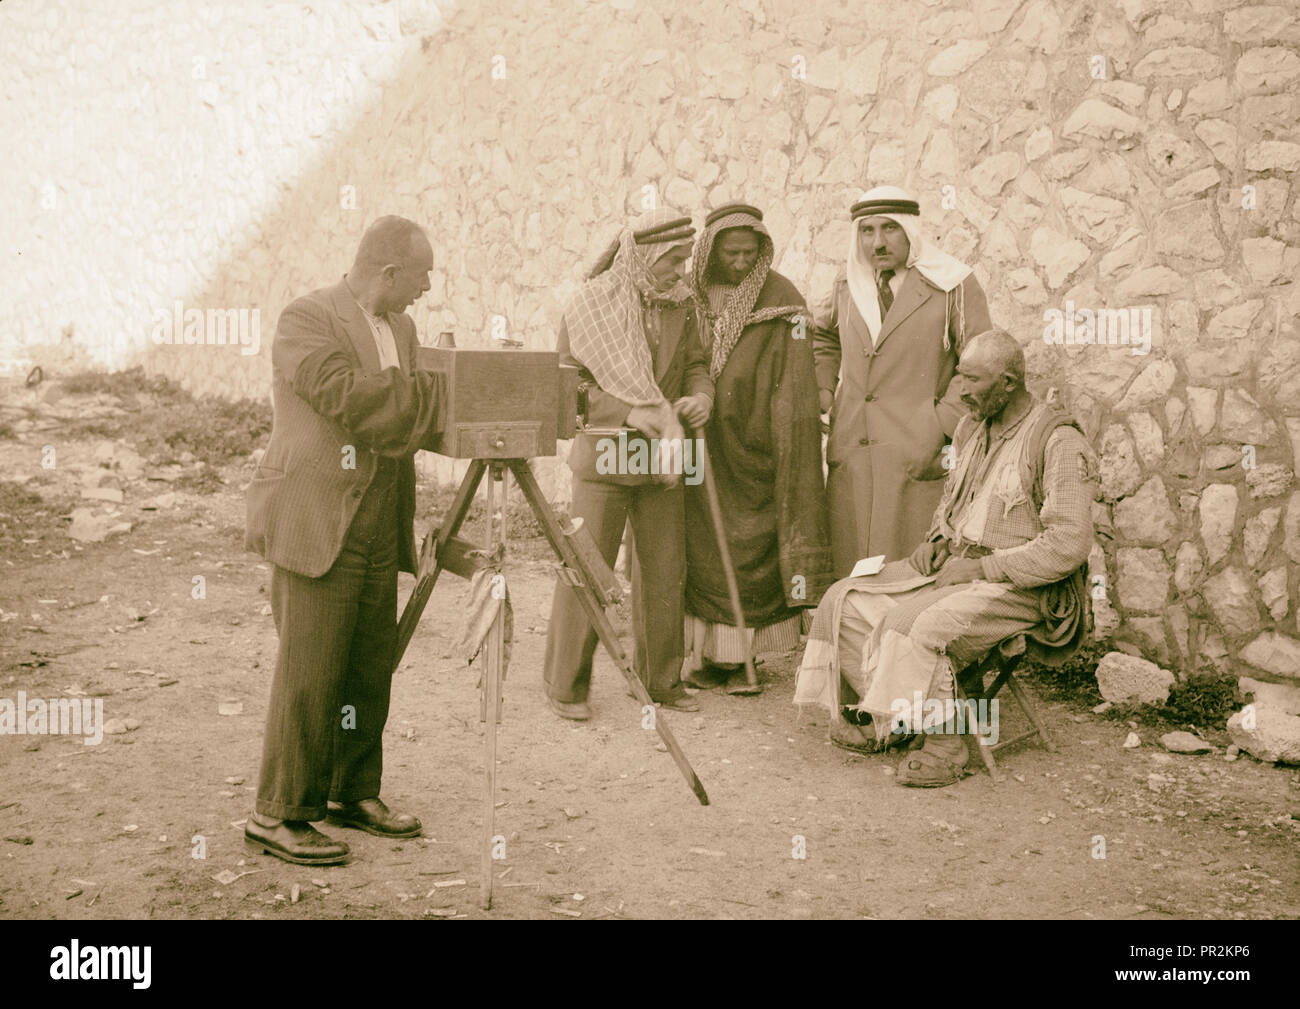 Peasants being photographed for identity cards, headdress removed. Photographer with camera taking a photograph of a man - Stock Image